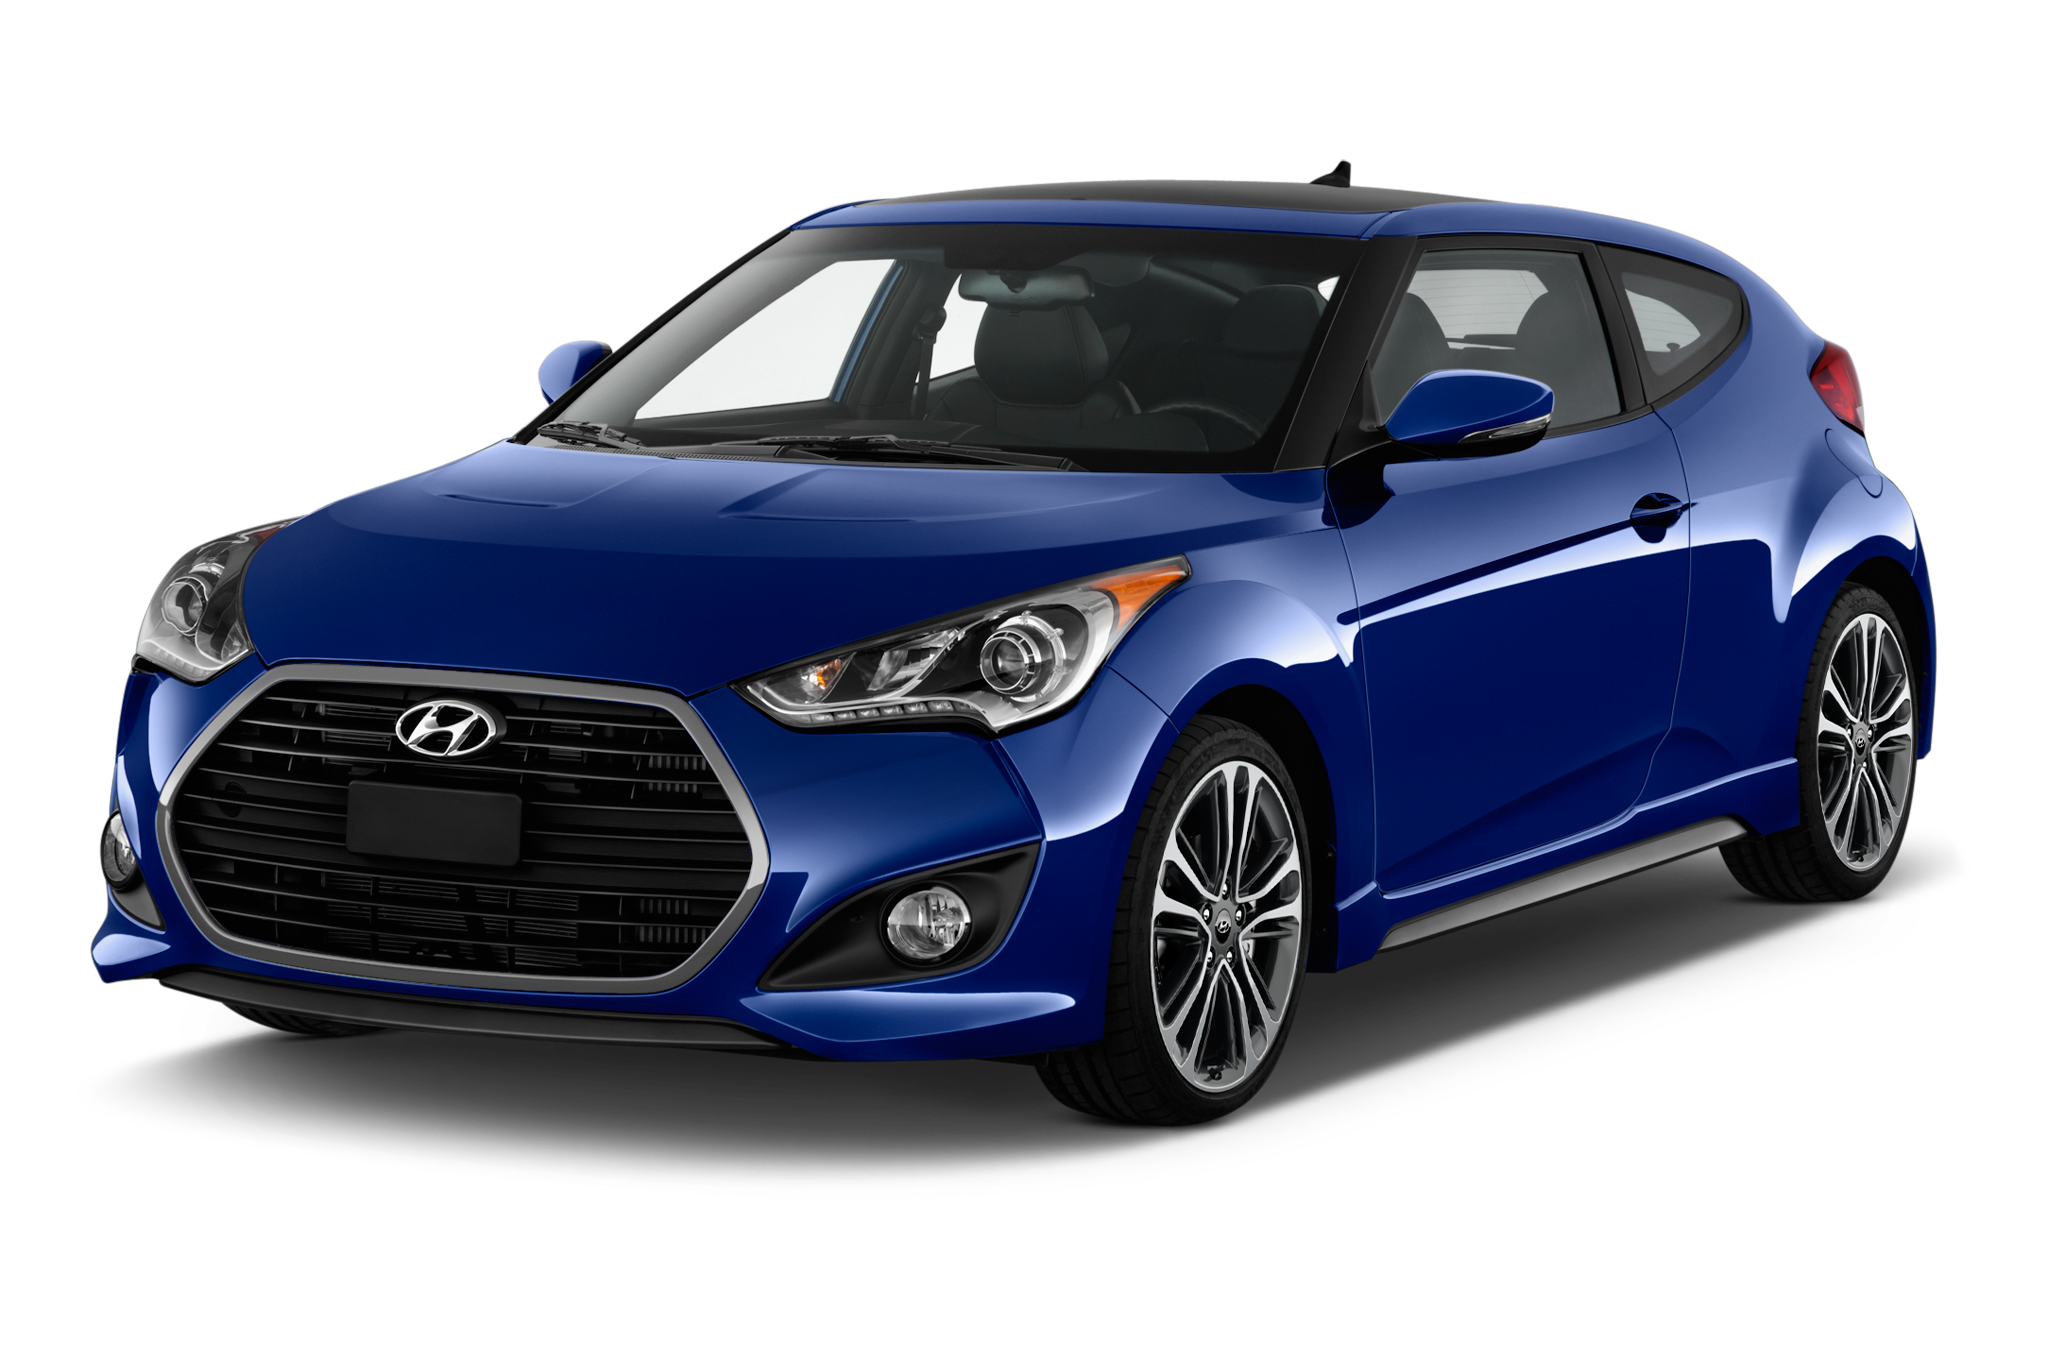 2017 hyundai veloster 1 6 turbo dual clutch w shiftronic. Black Bedroom Furniture Sets. Home Design Ideas